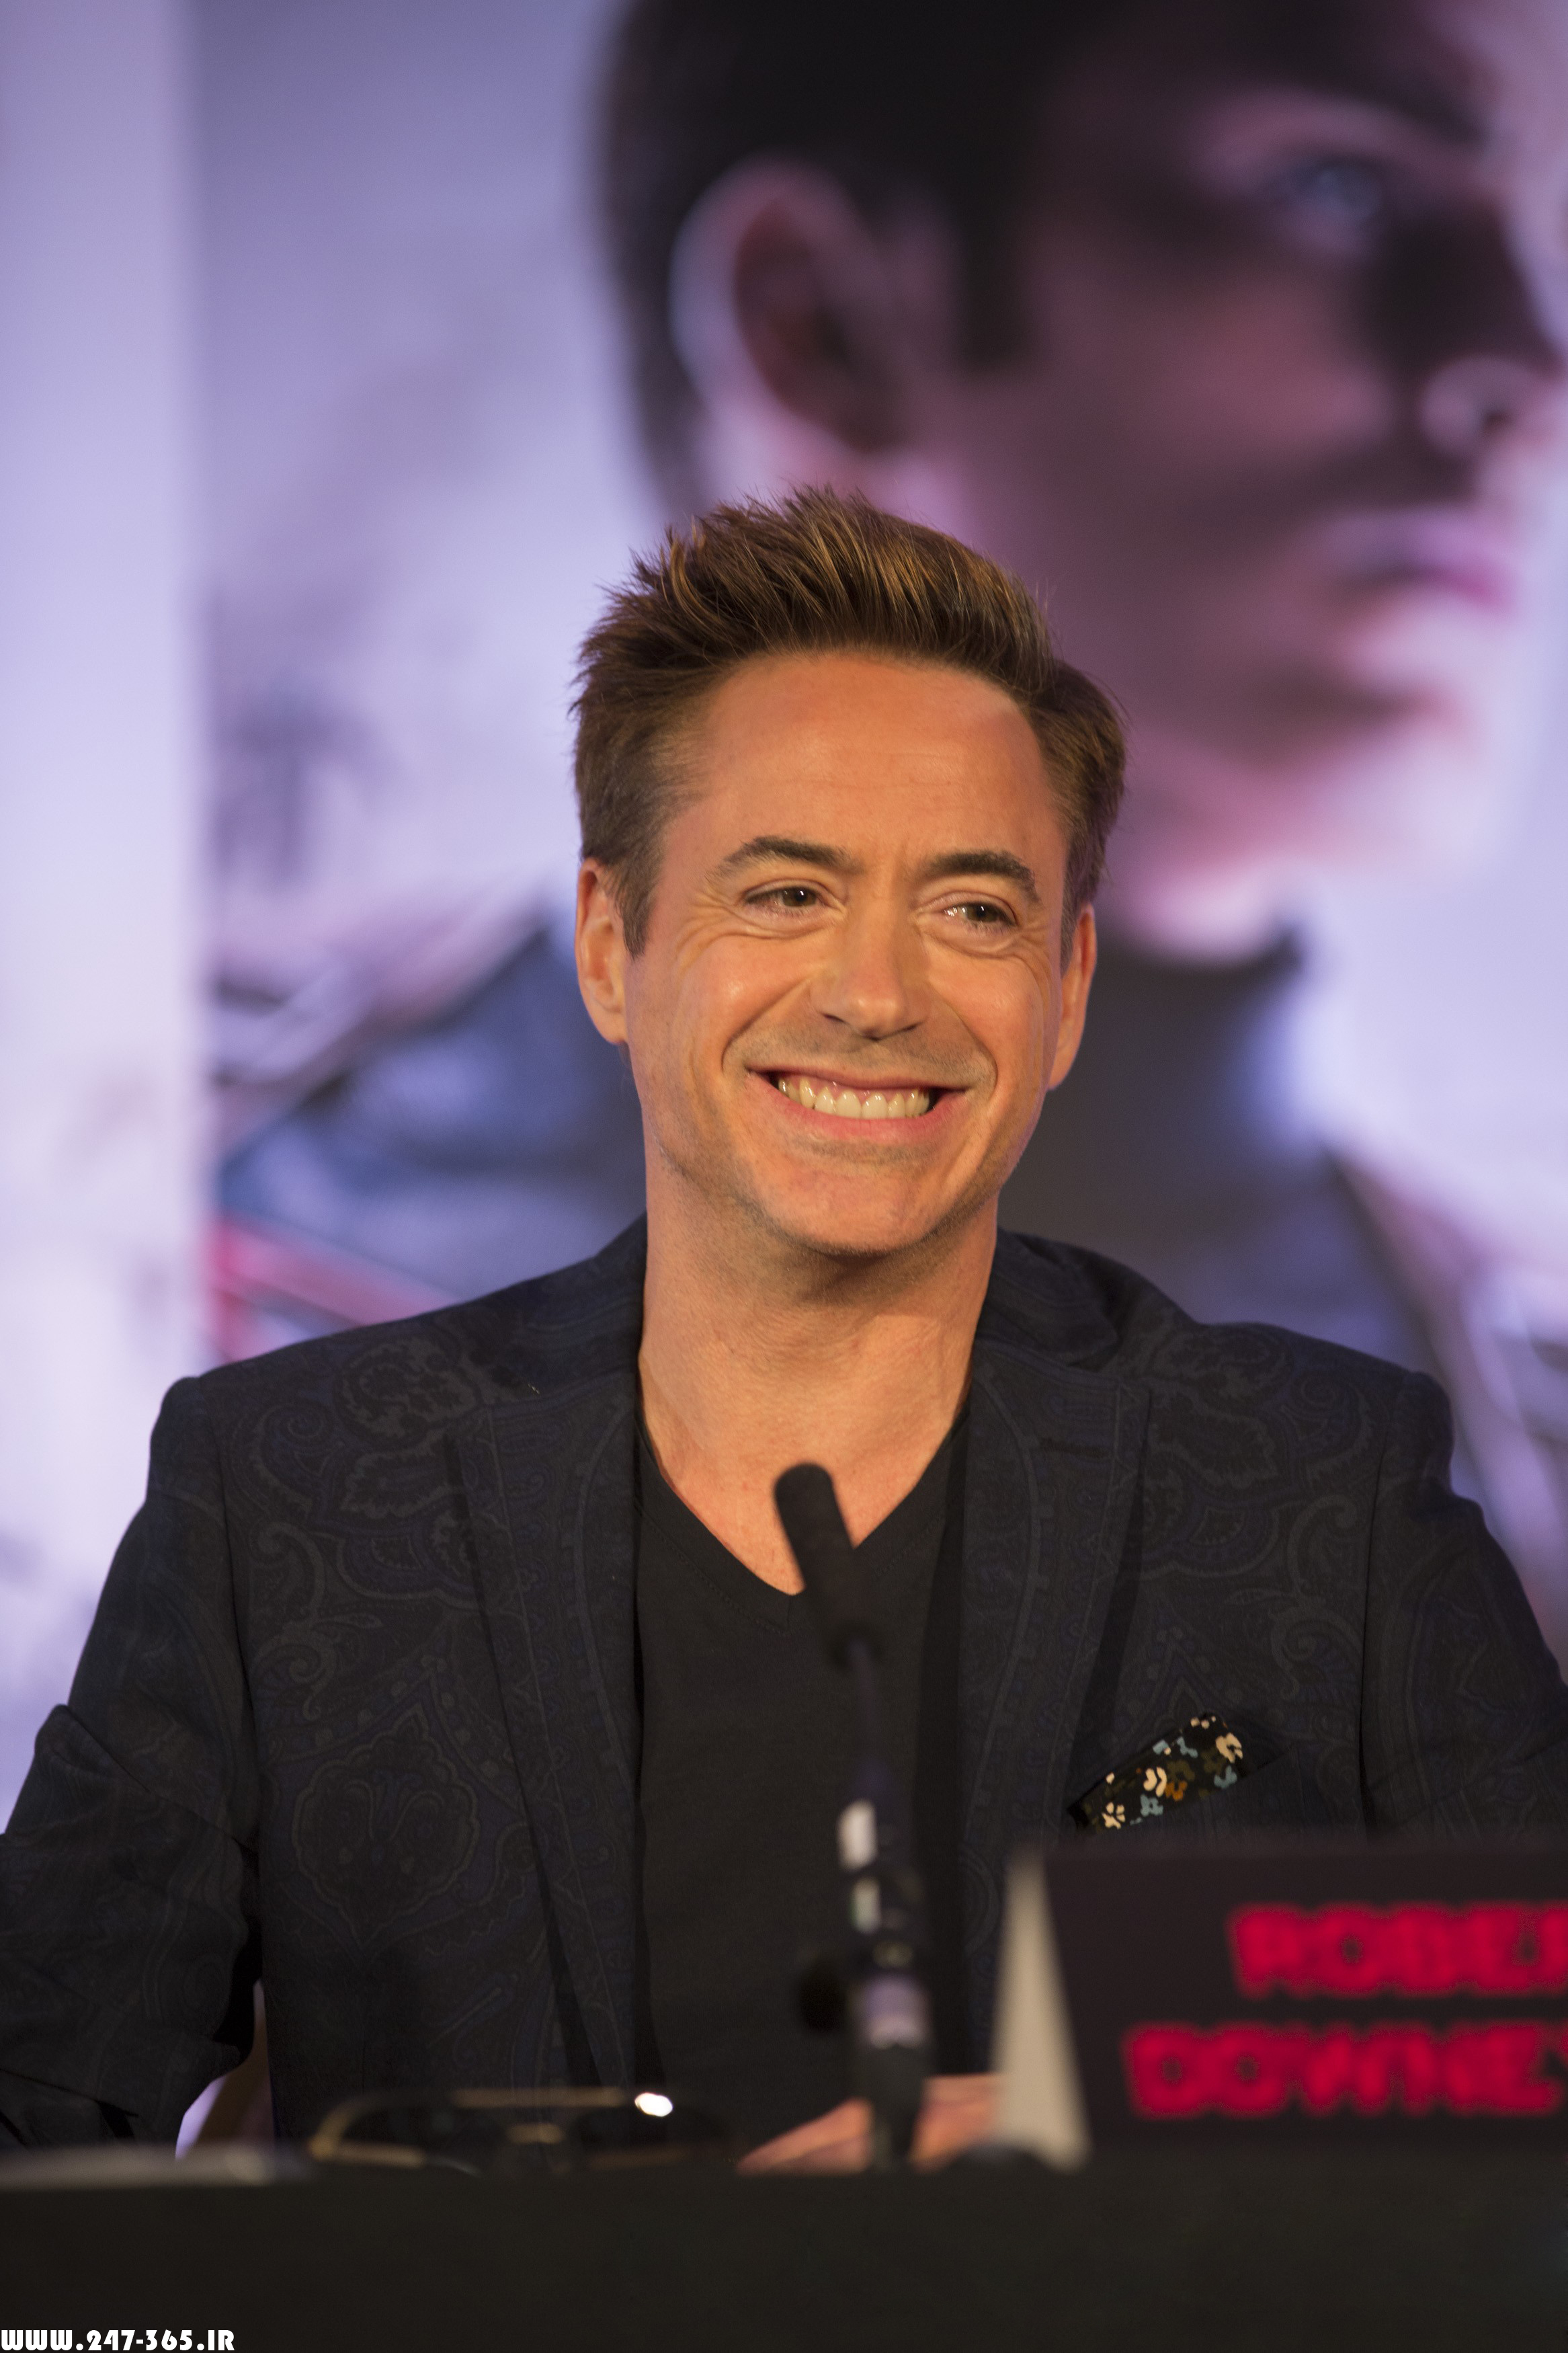 http://dl.247-365.ir/pic/celebrity/robert_downey_jr_2/Robert_Downey_Jr_2_15.jpg